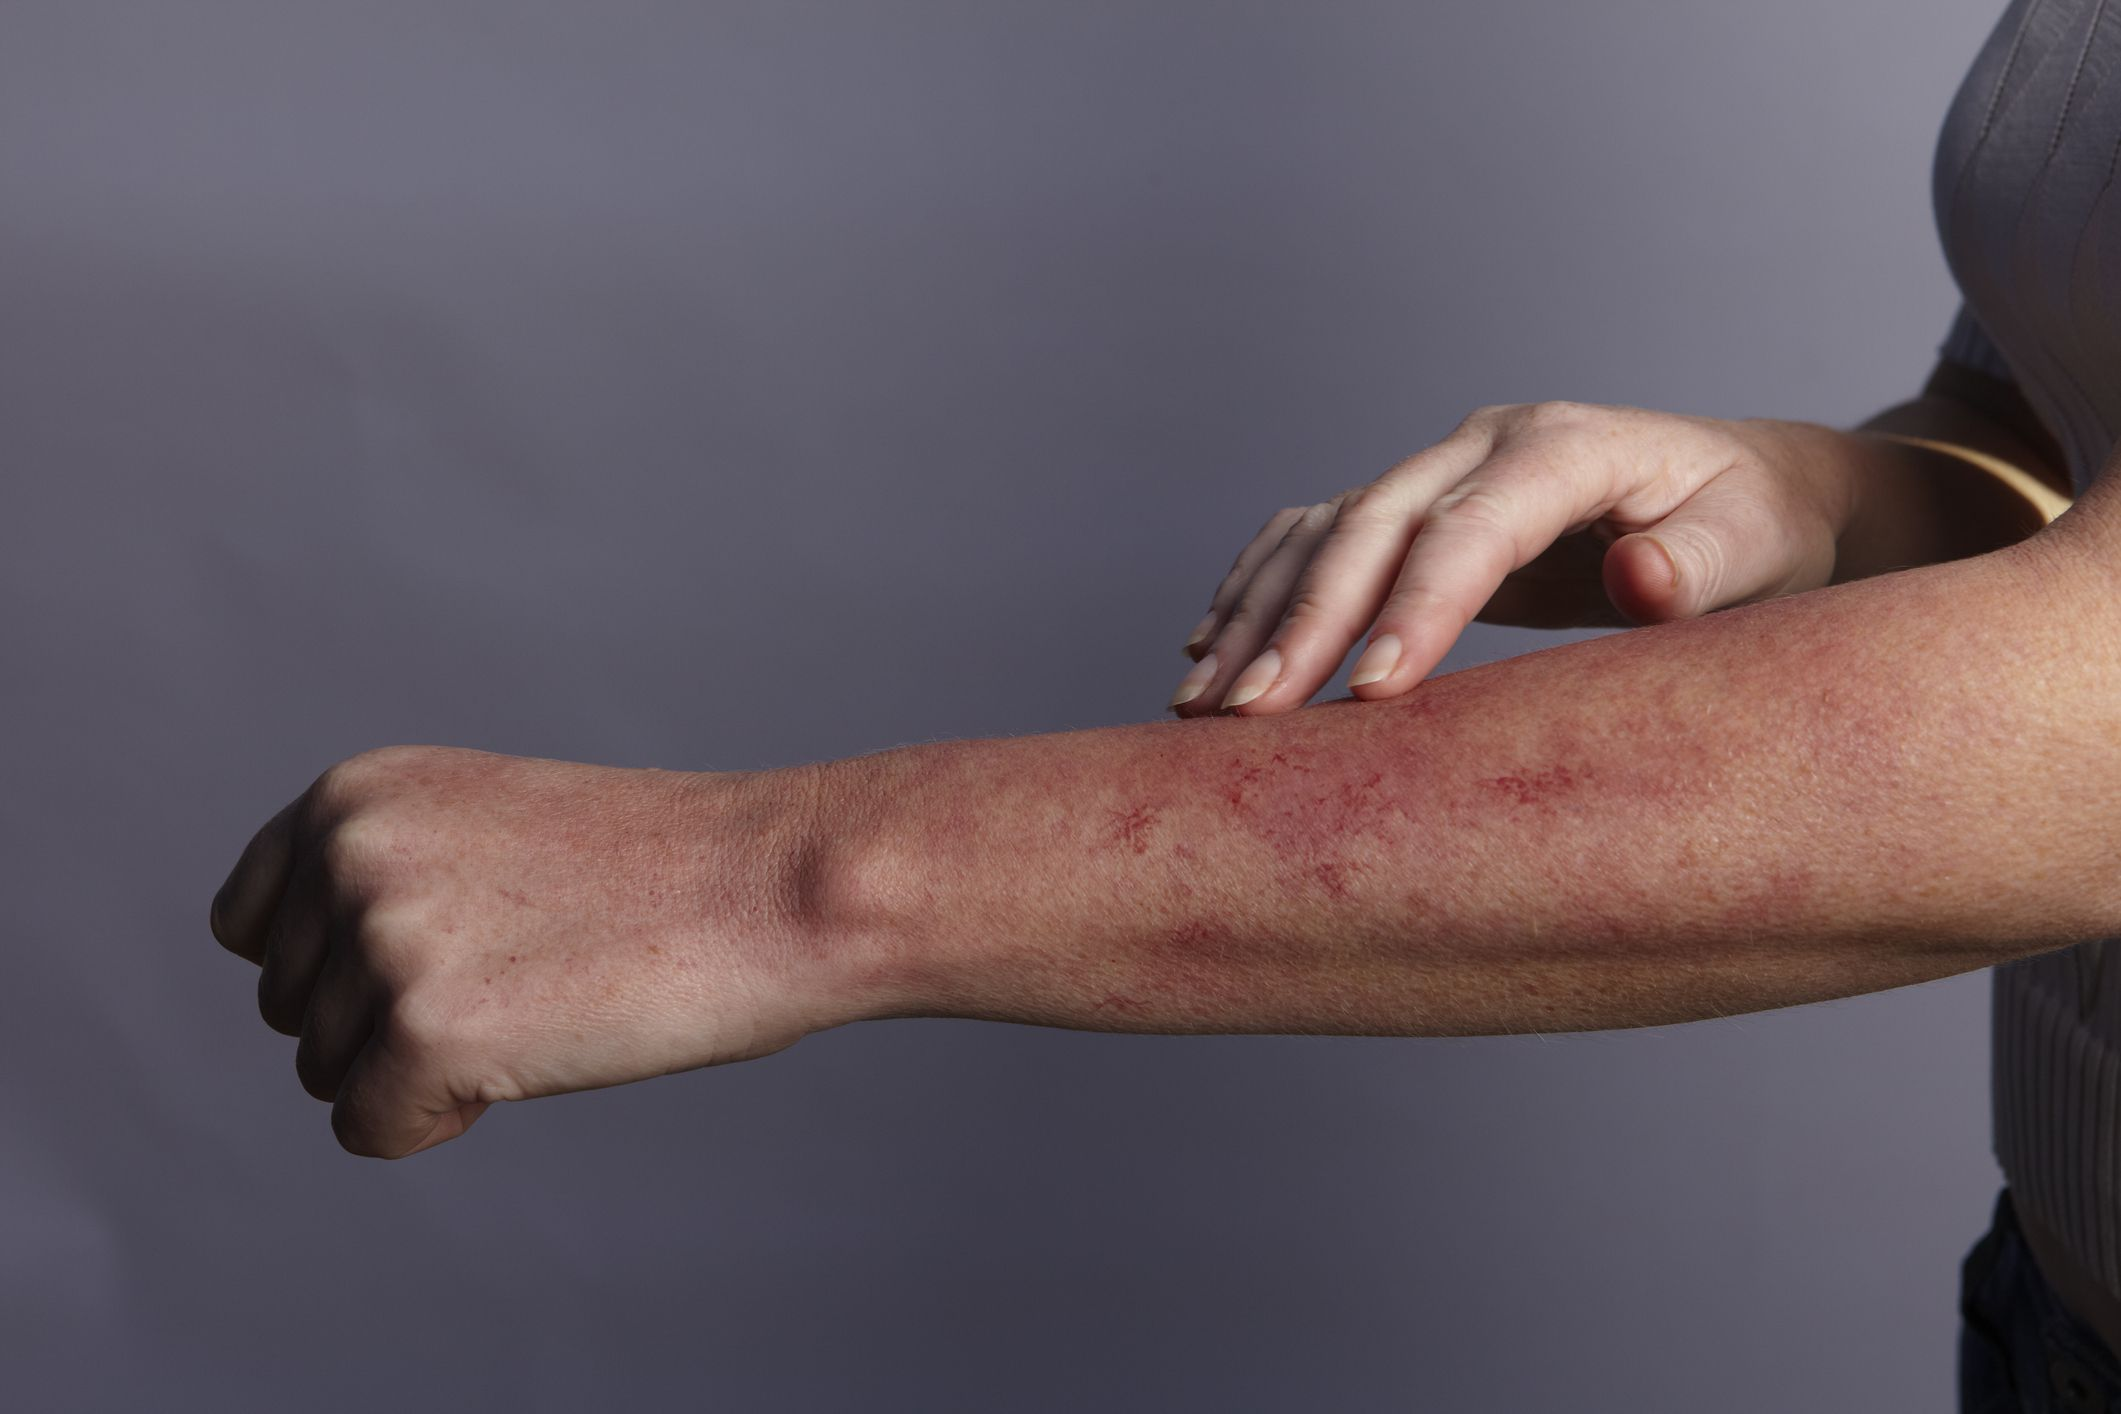 Hand touching a rash on the arm